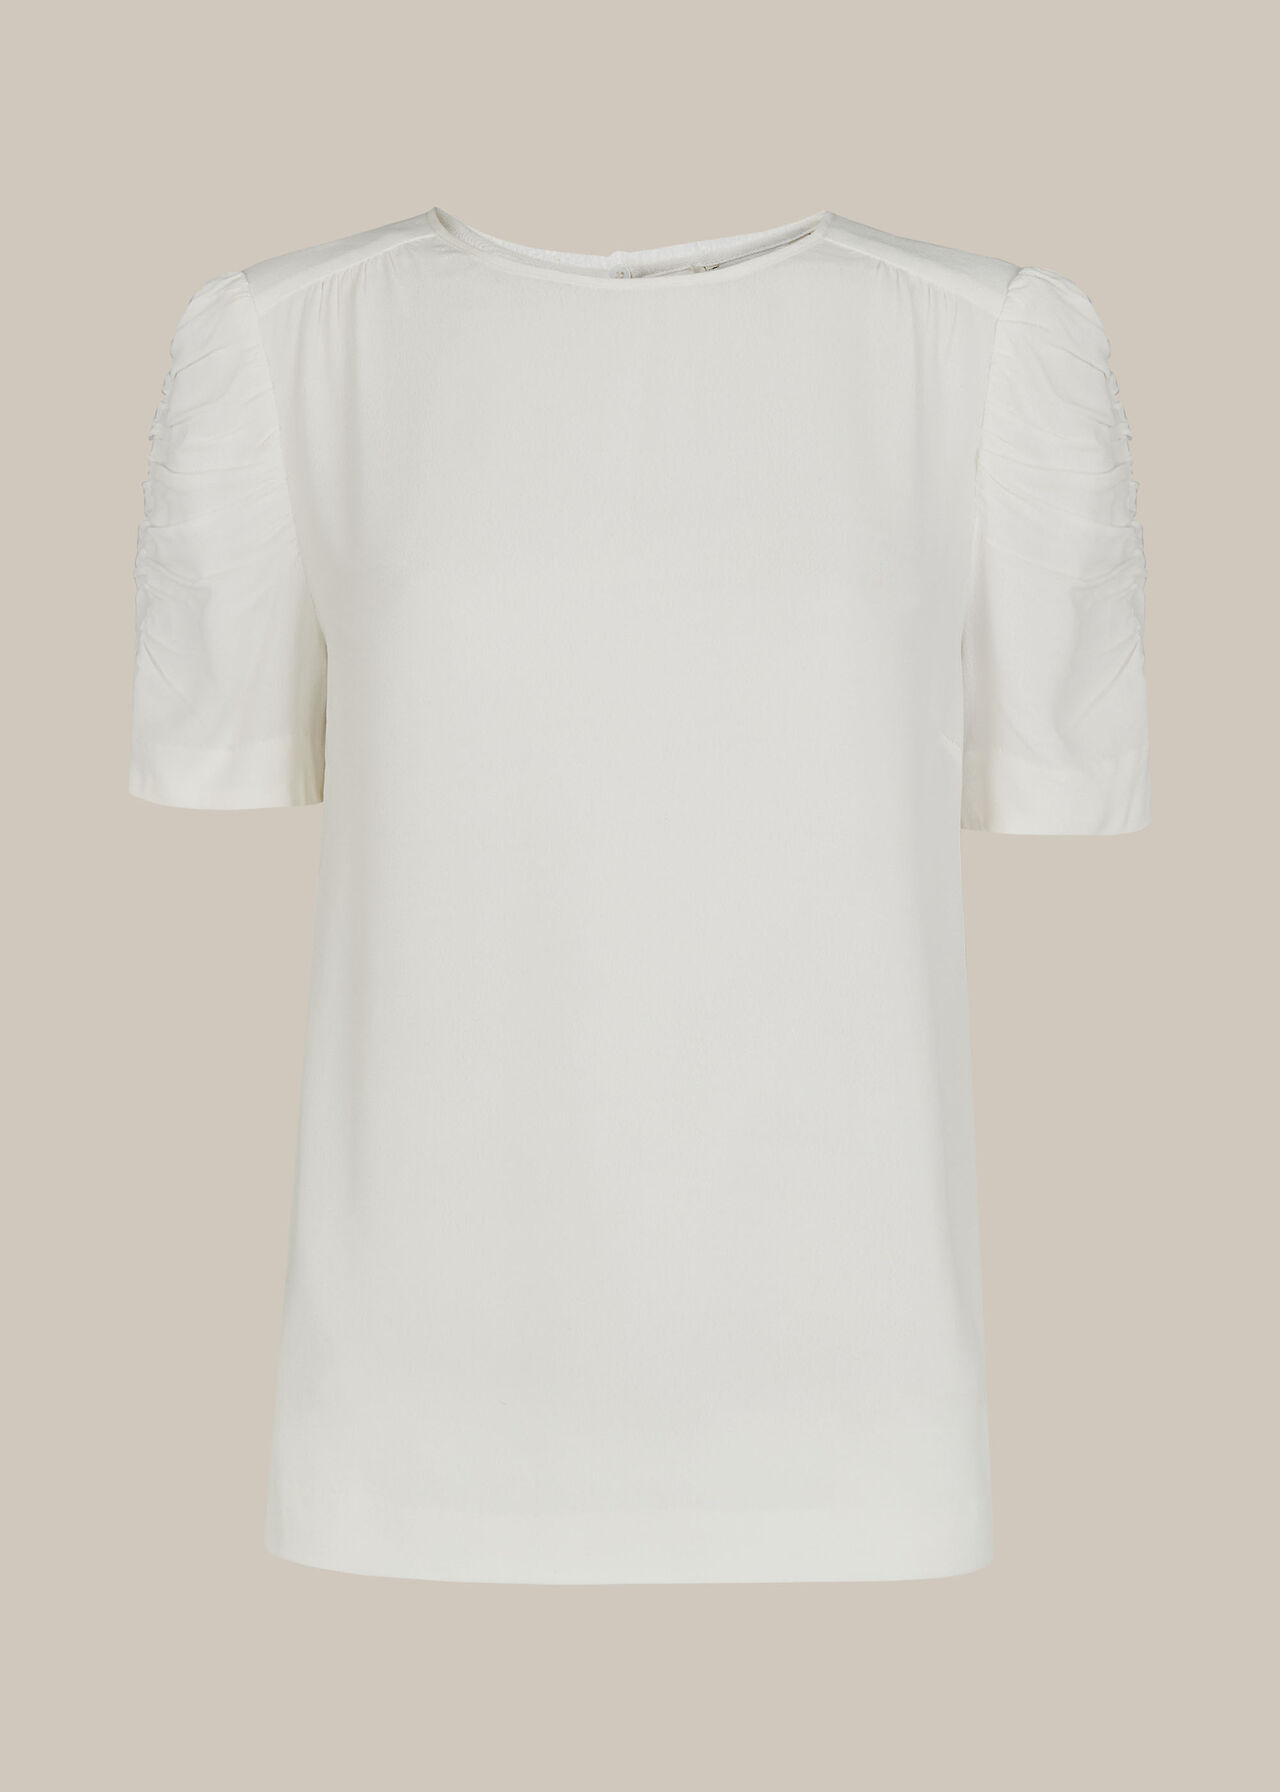 Nelly Shell Top